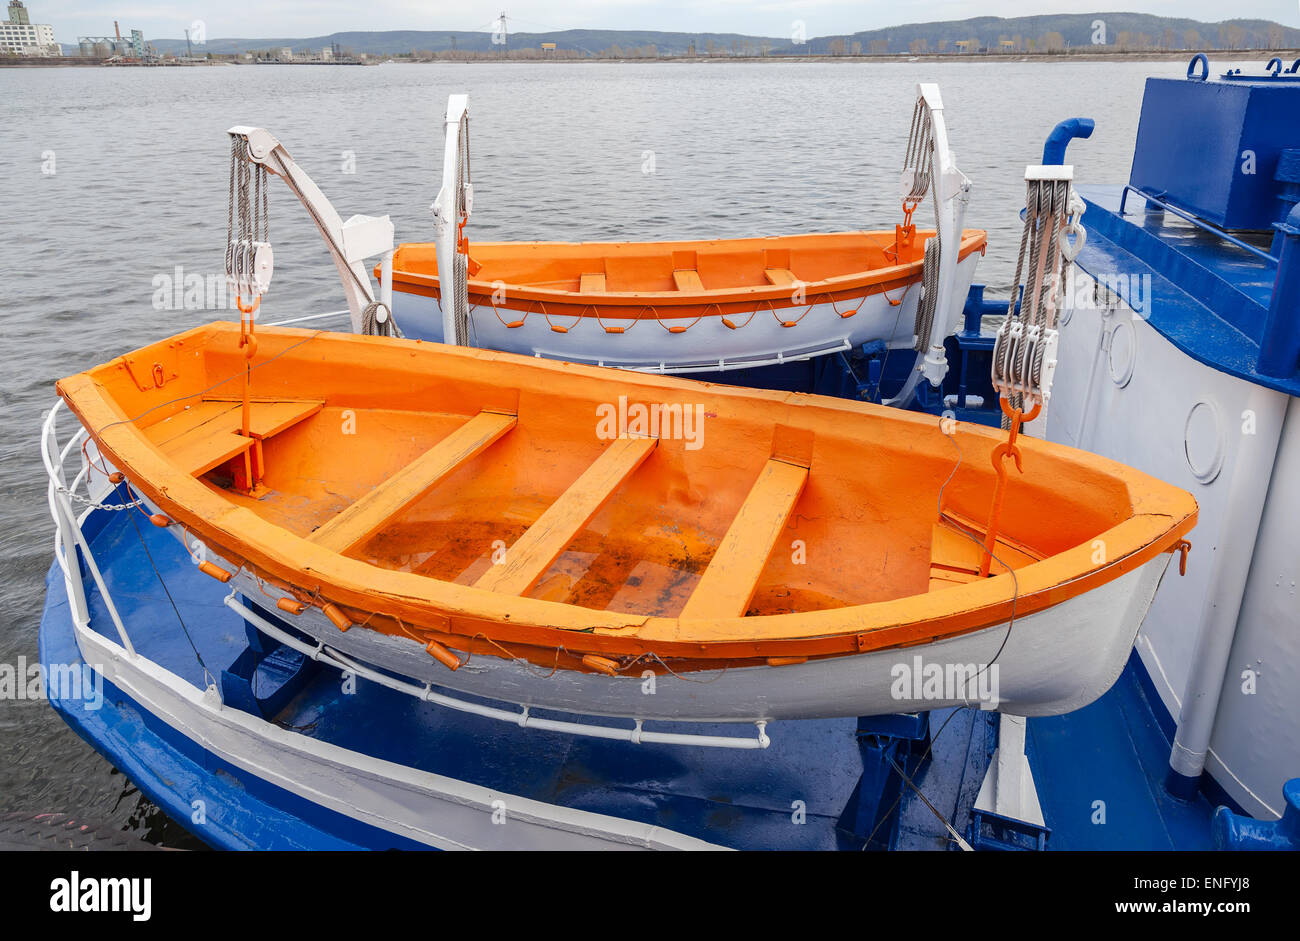 Safety lifeboats of the river cruise passenger ship - Stock Image